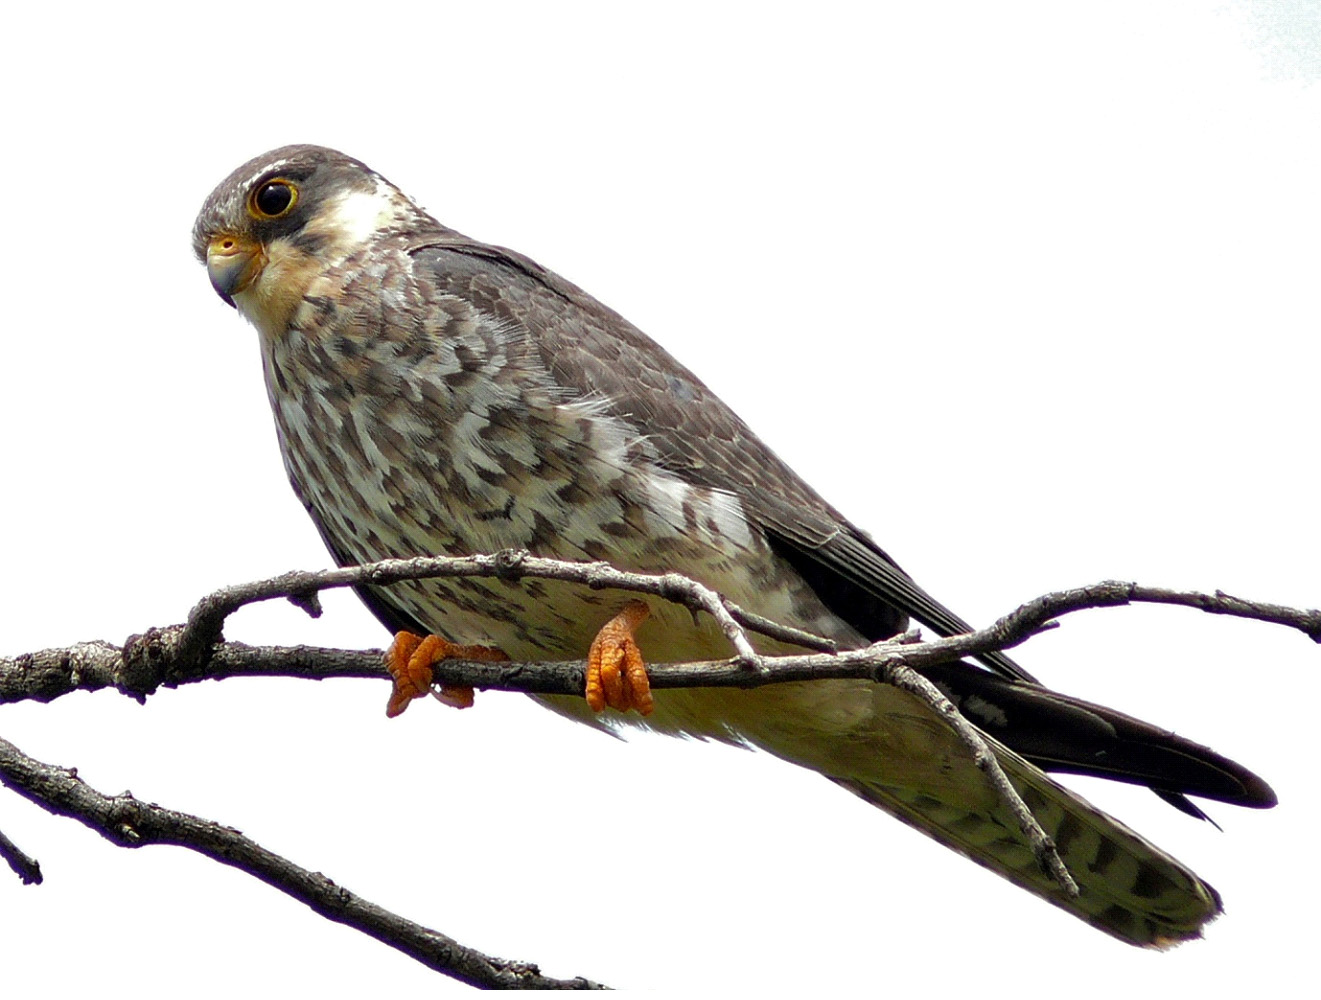 MANIPUR' S PHALONG VILLAGE HAS BEEN DECLARED THE AMUR FALCON VILLAGE